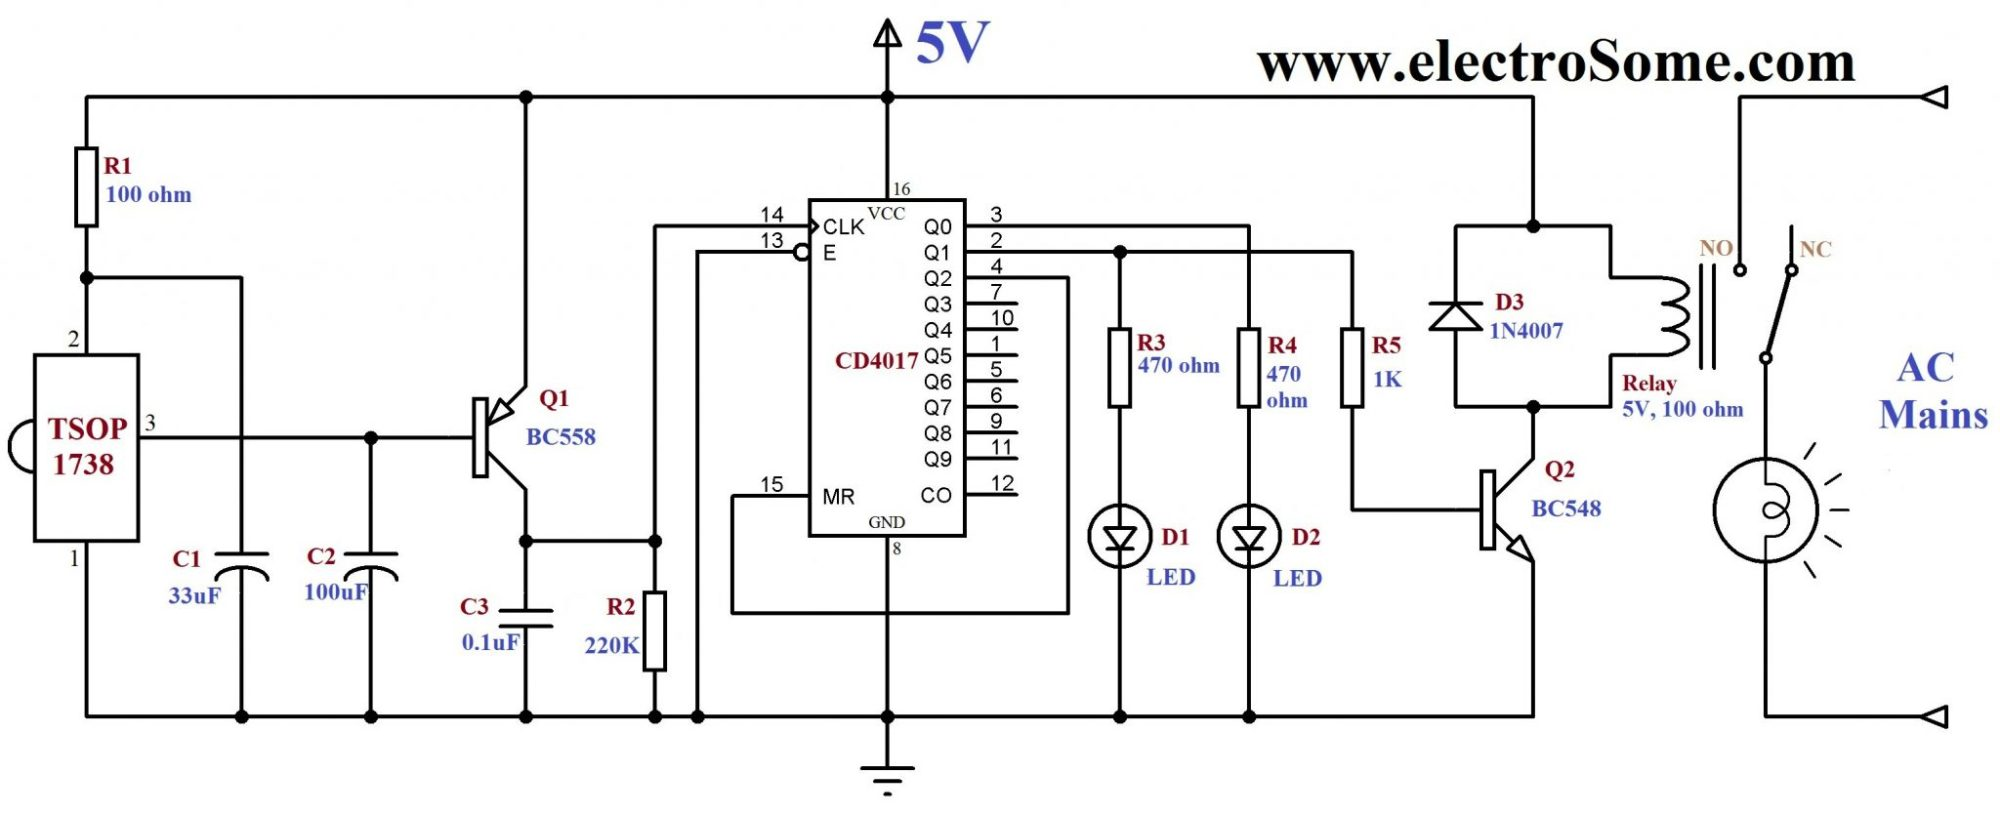 hight resolution of infrared remote control for home appliances ir remote control modulation detector electronic circuit diagram